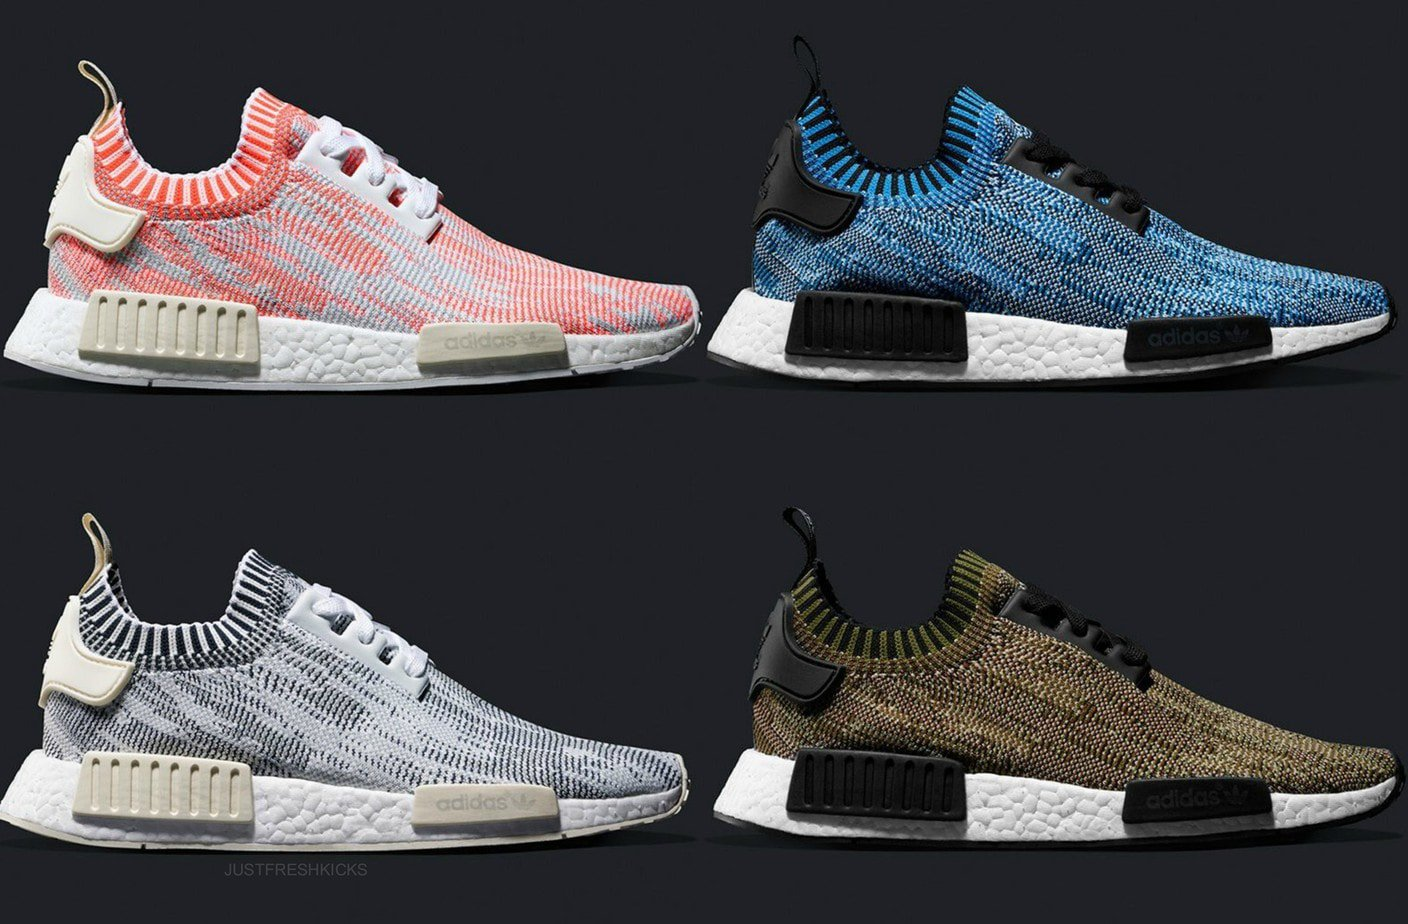 be555b0c46e3ef The Adidas NMD R1 Primeknit